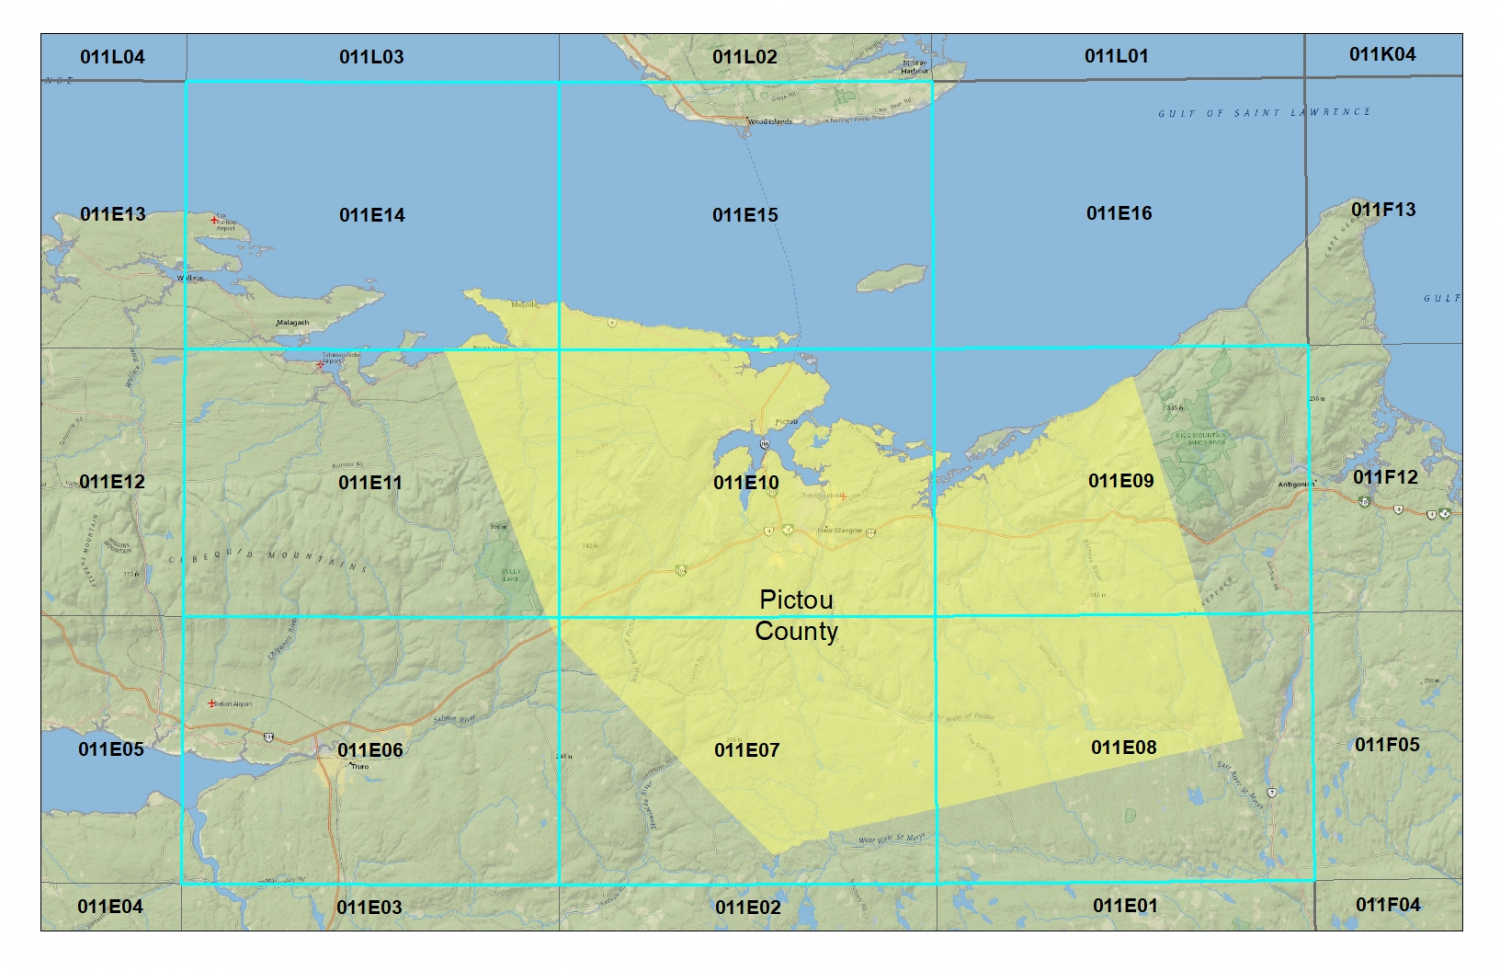 Pictou County Topographic Maps - NTS topographic maps